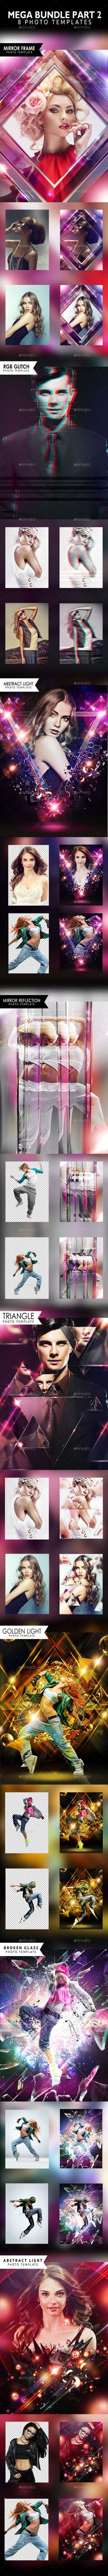 one of the best value bundles photo templates on graphicriver This pack includes 8 photo templates: All psd files are RGB A4 300